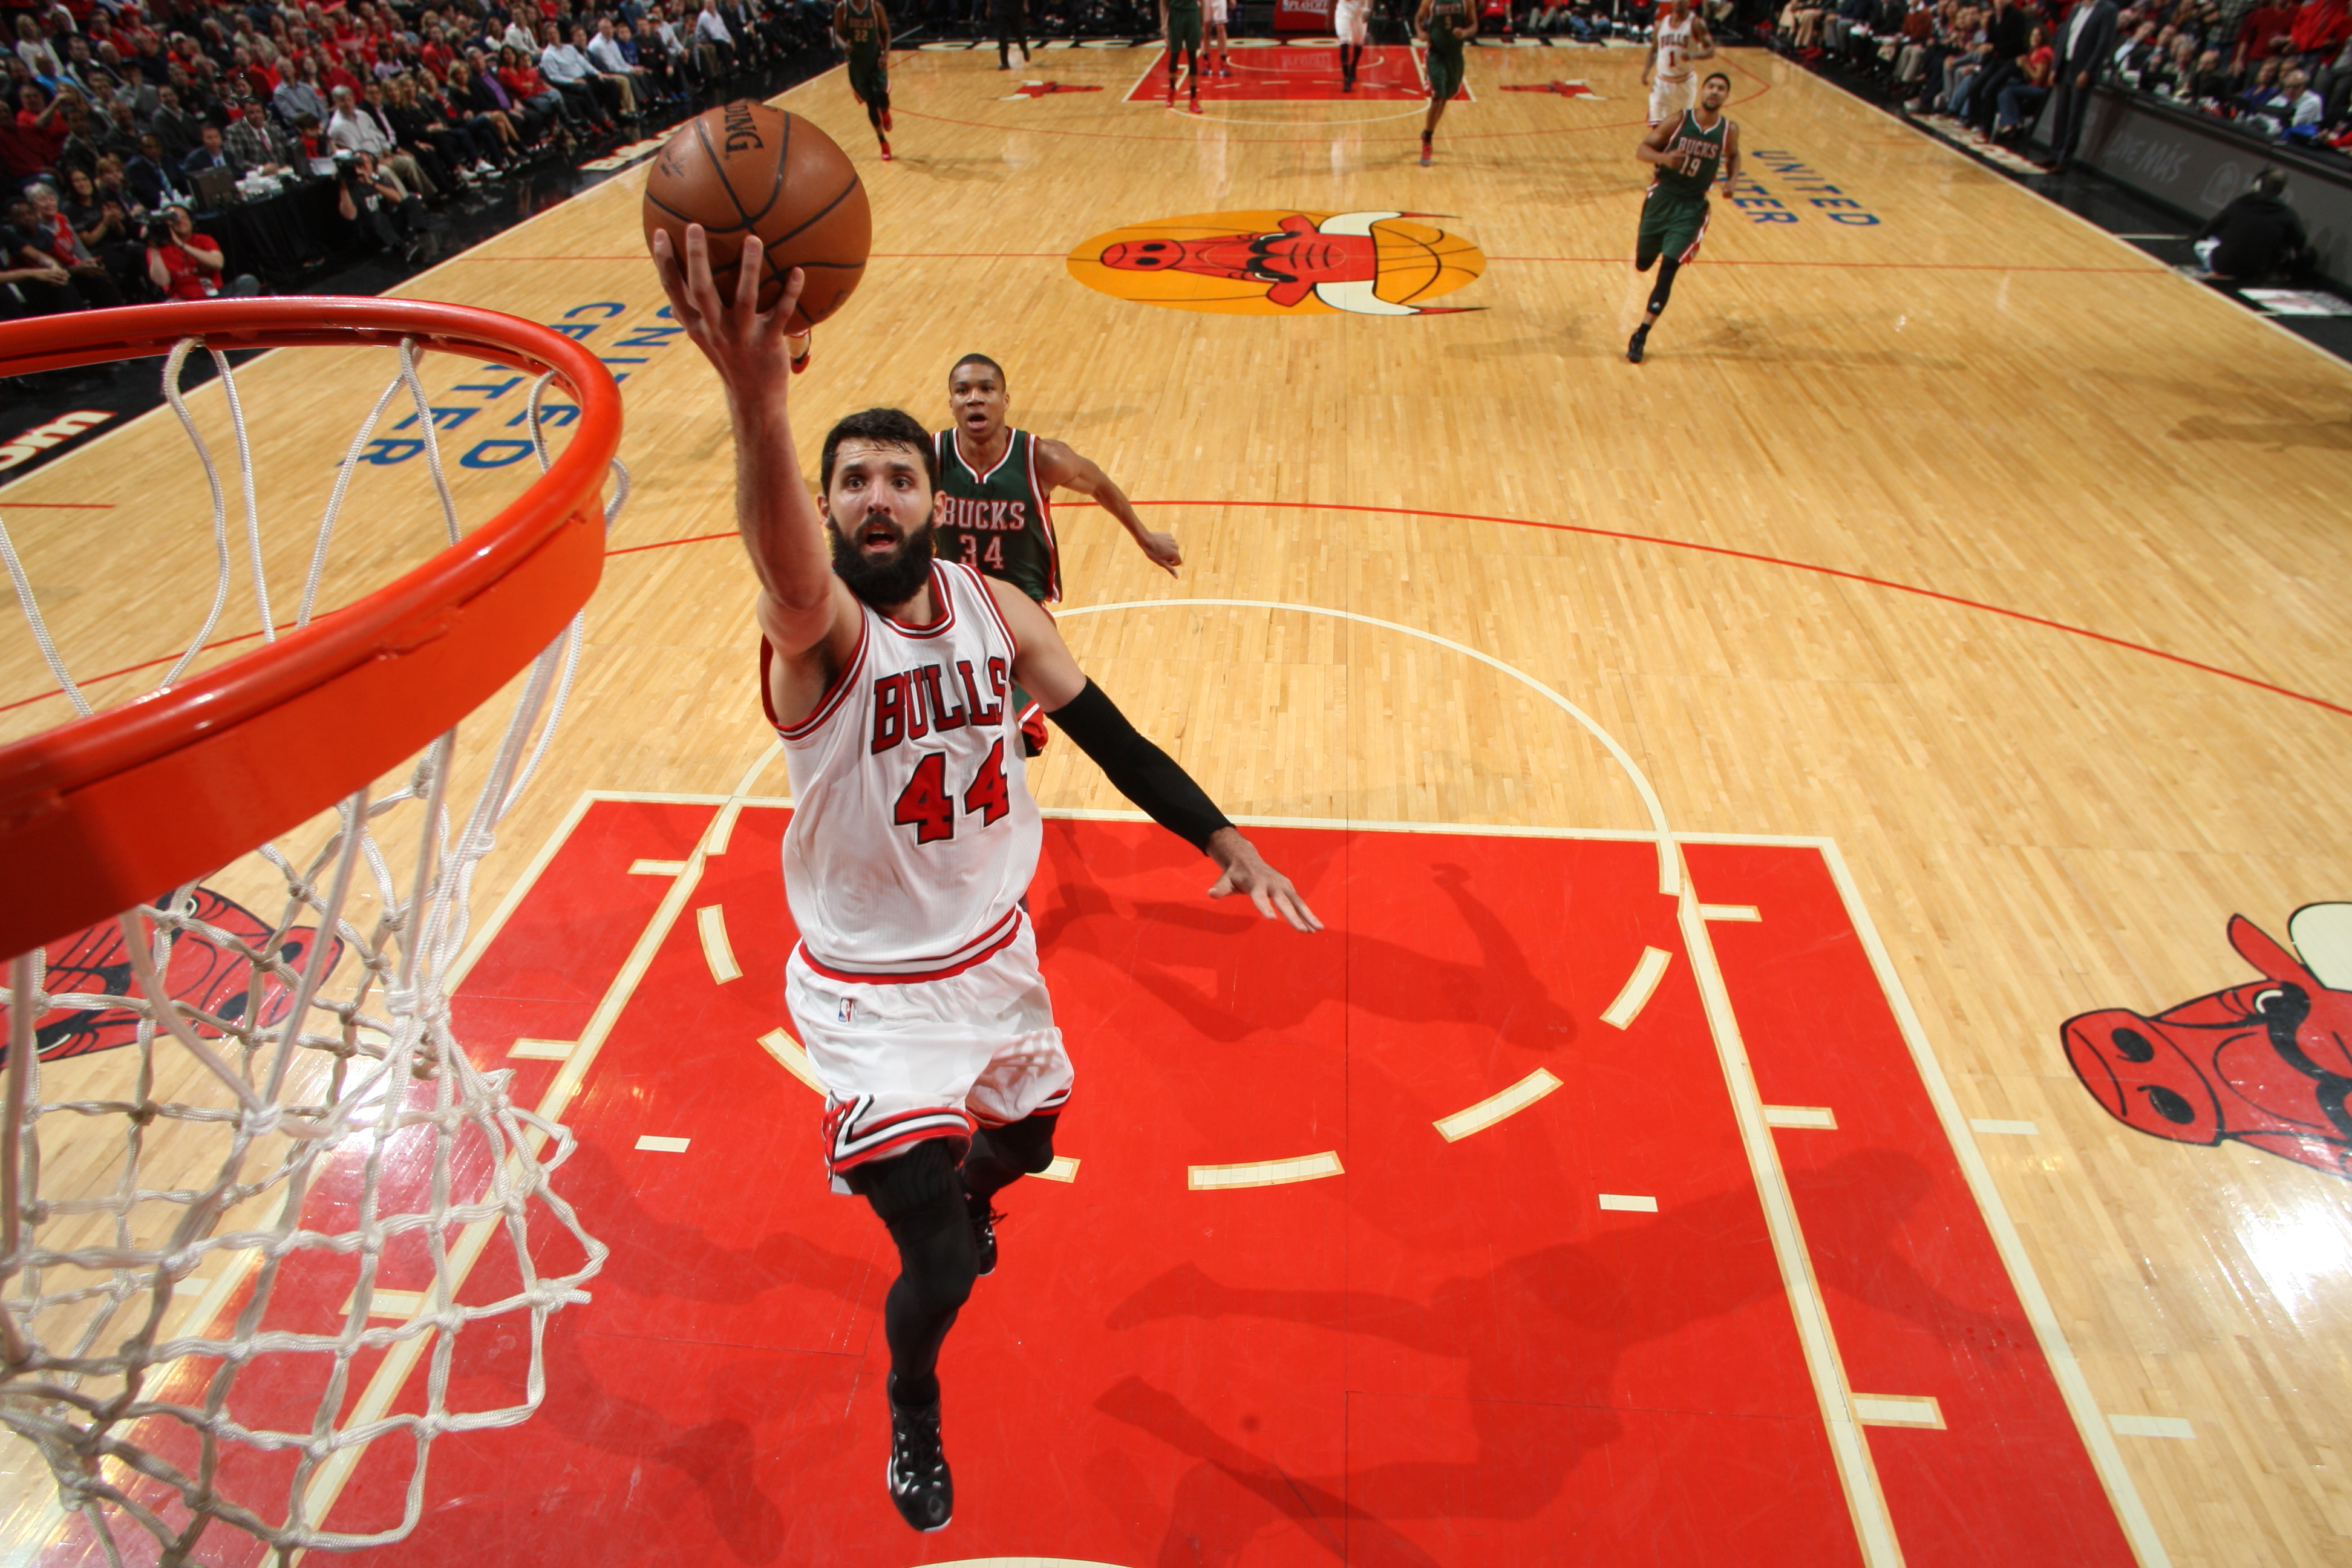 CHICAGO, IL - APRIL 20:  Nikola Mirotic #44 of the Chicago Bulls goes to the basket against the Milwaukee Bucks in Game Two of the Eastern Conference Quarterfinals during the NBA Playoffs on April 20, 2015 at the United Center in Chicago, Illinois. (Photo